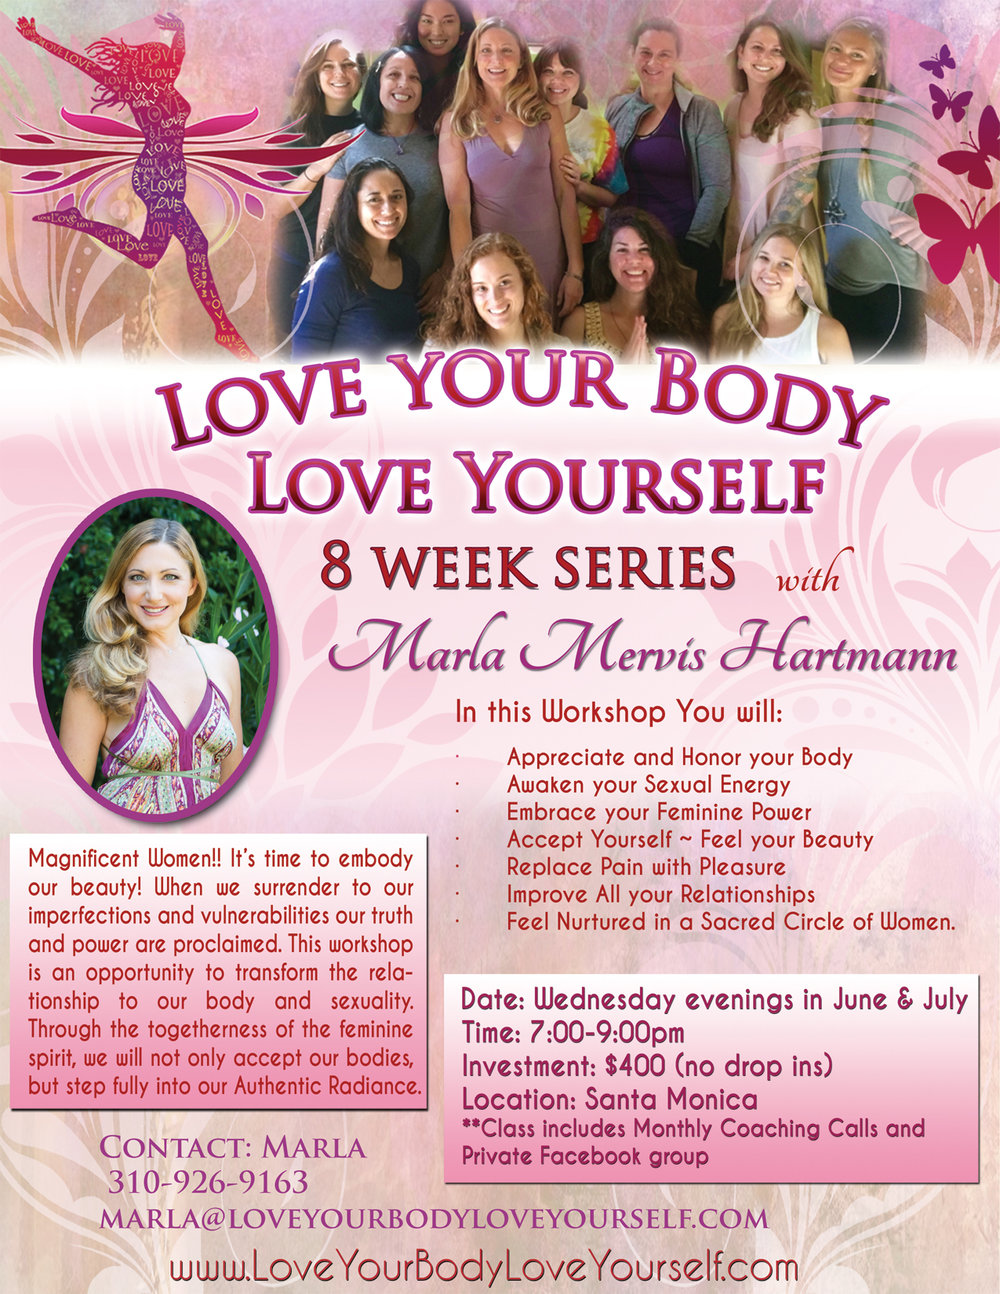 Love Your Body 8 Week Series